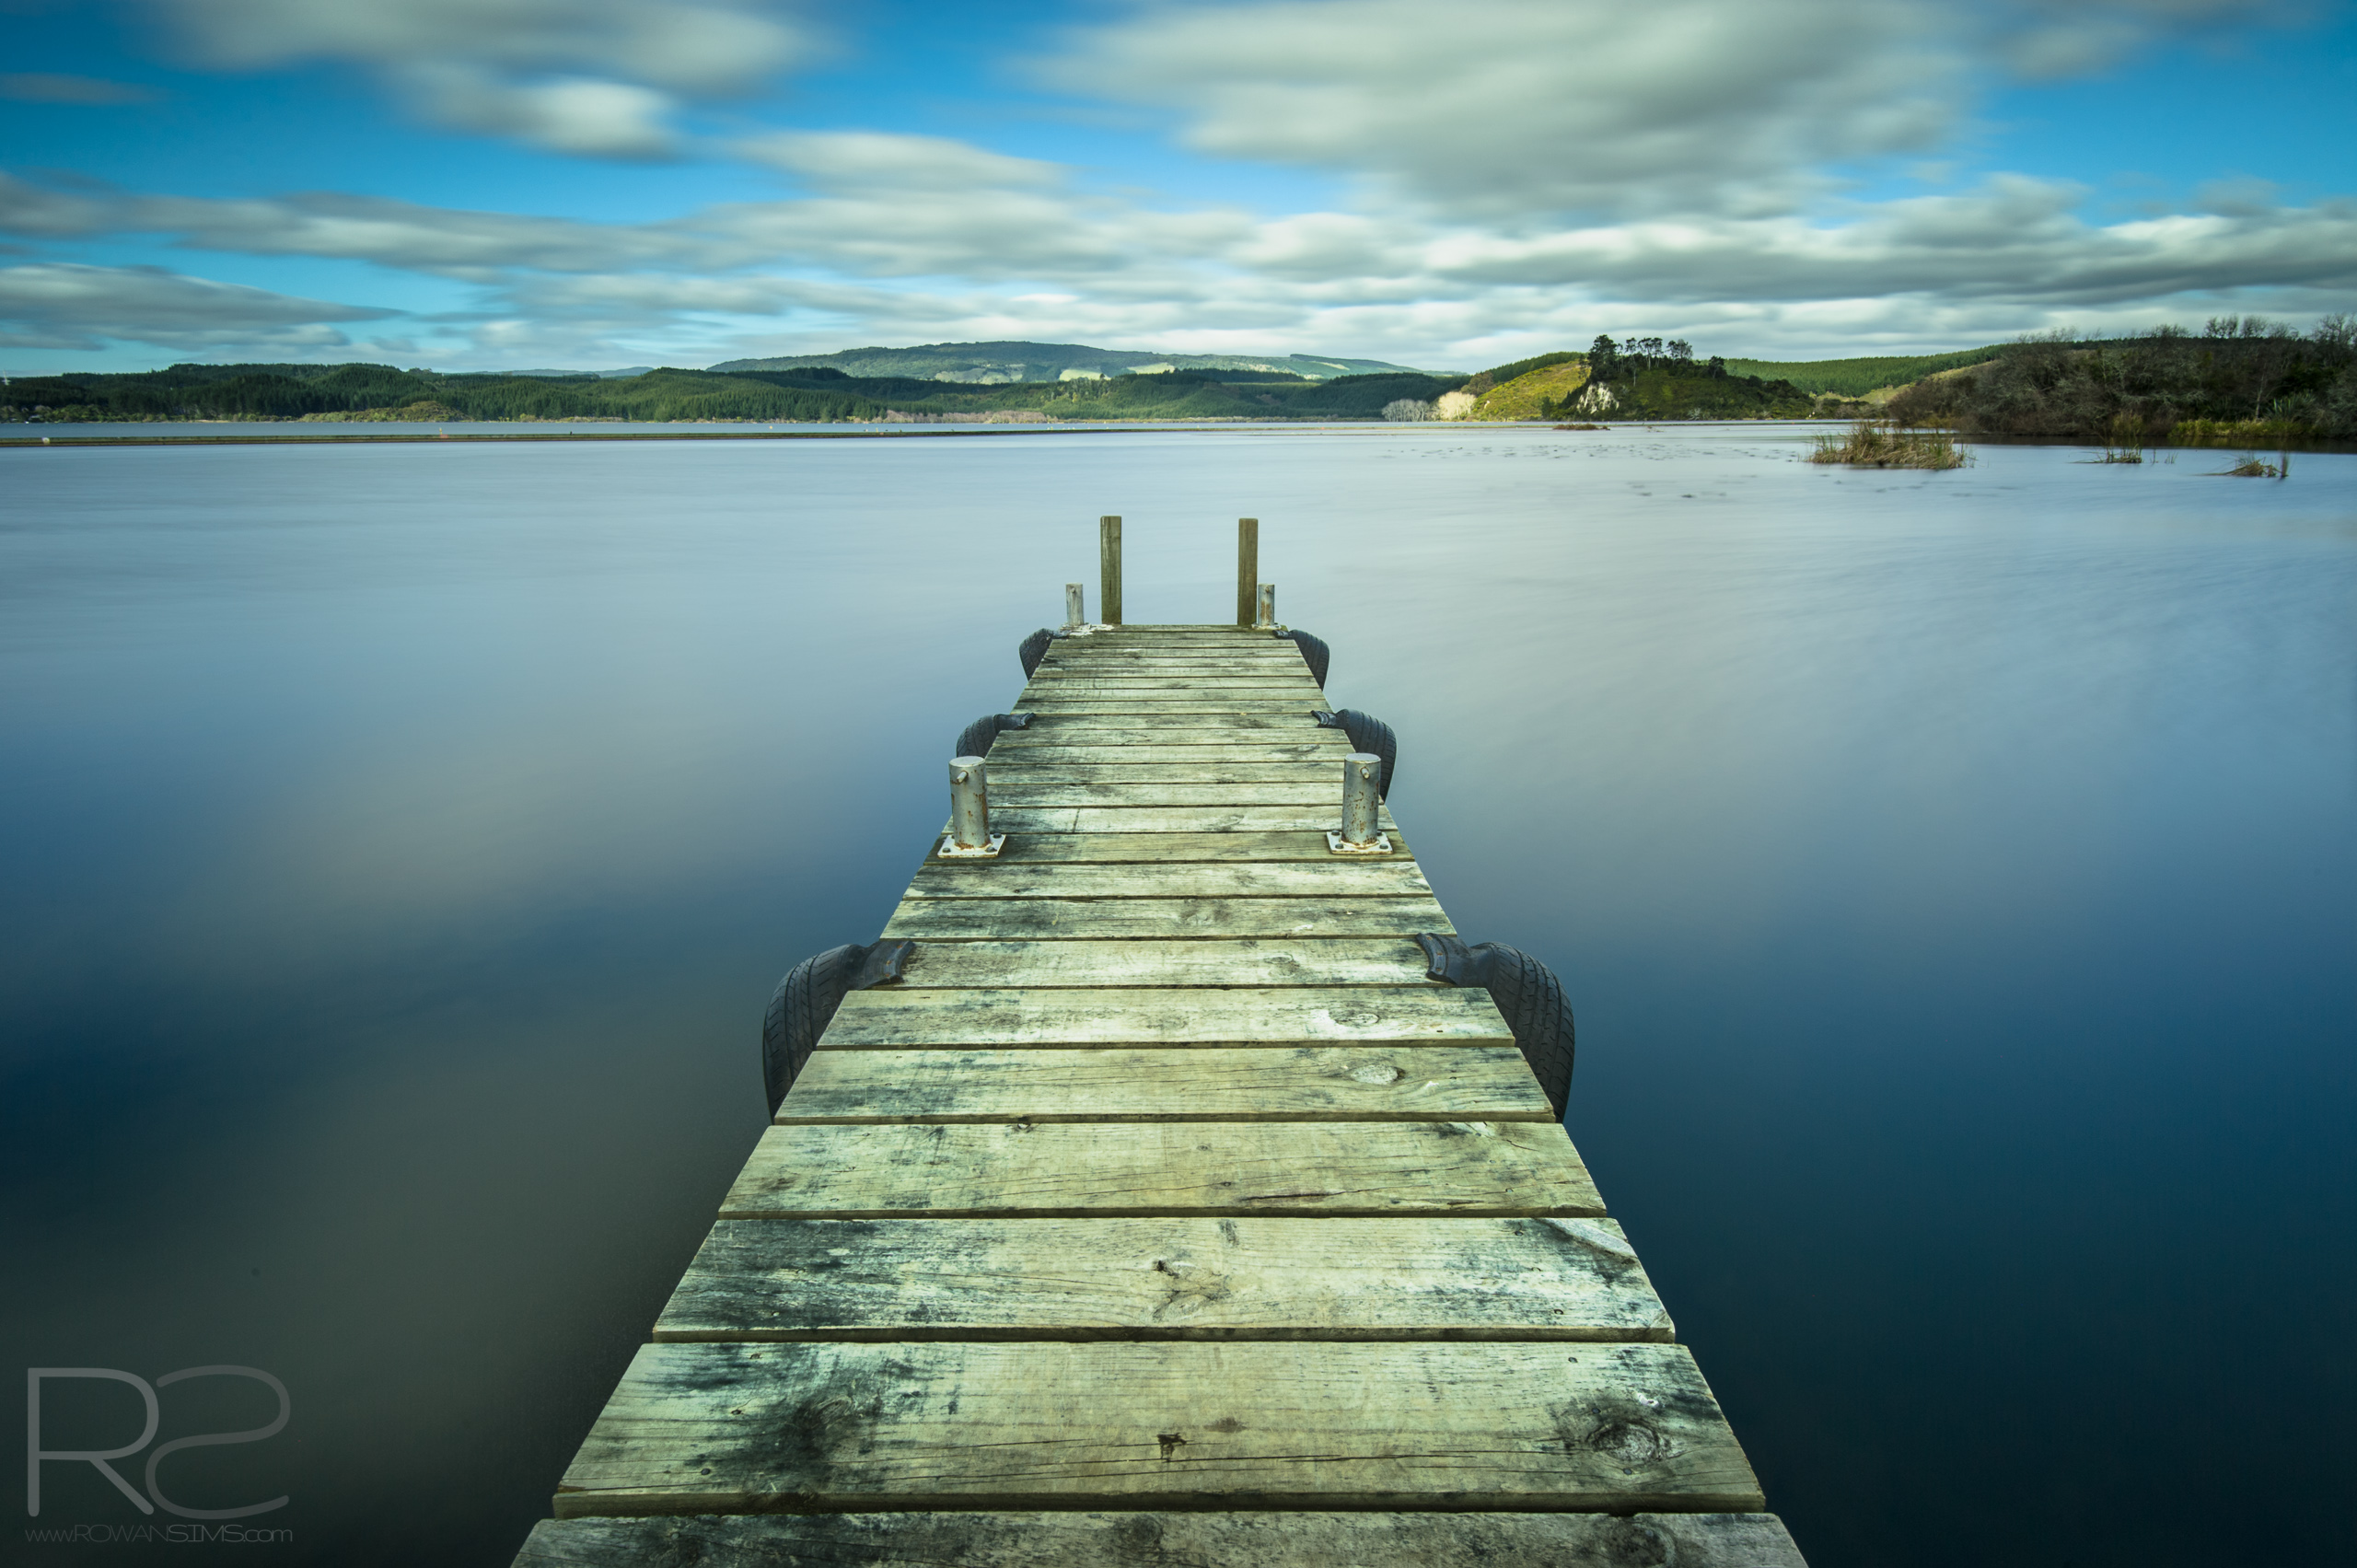 Long exposure landscape photo of a jetty in Waipuna Bay, Lake Rotoiti, Rotorua, New Zealand